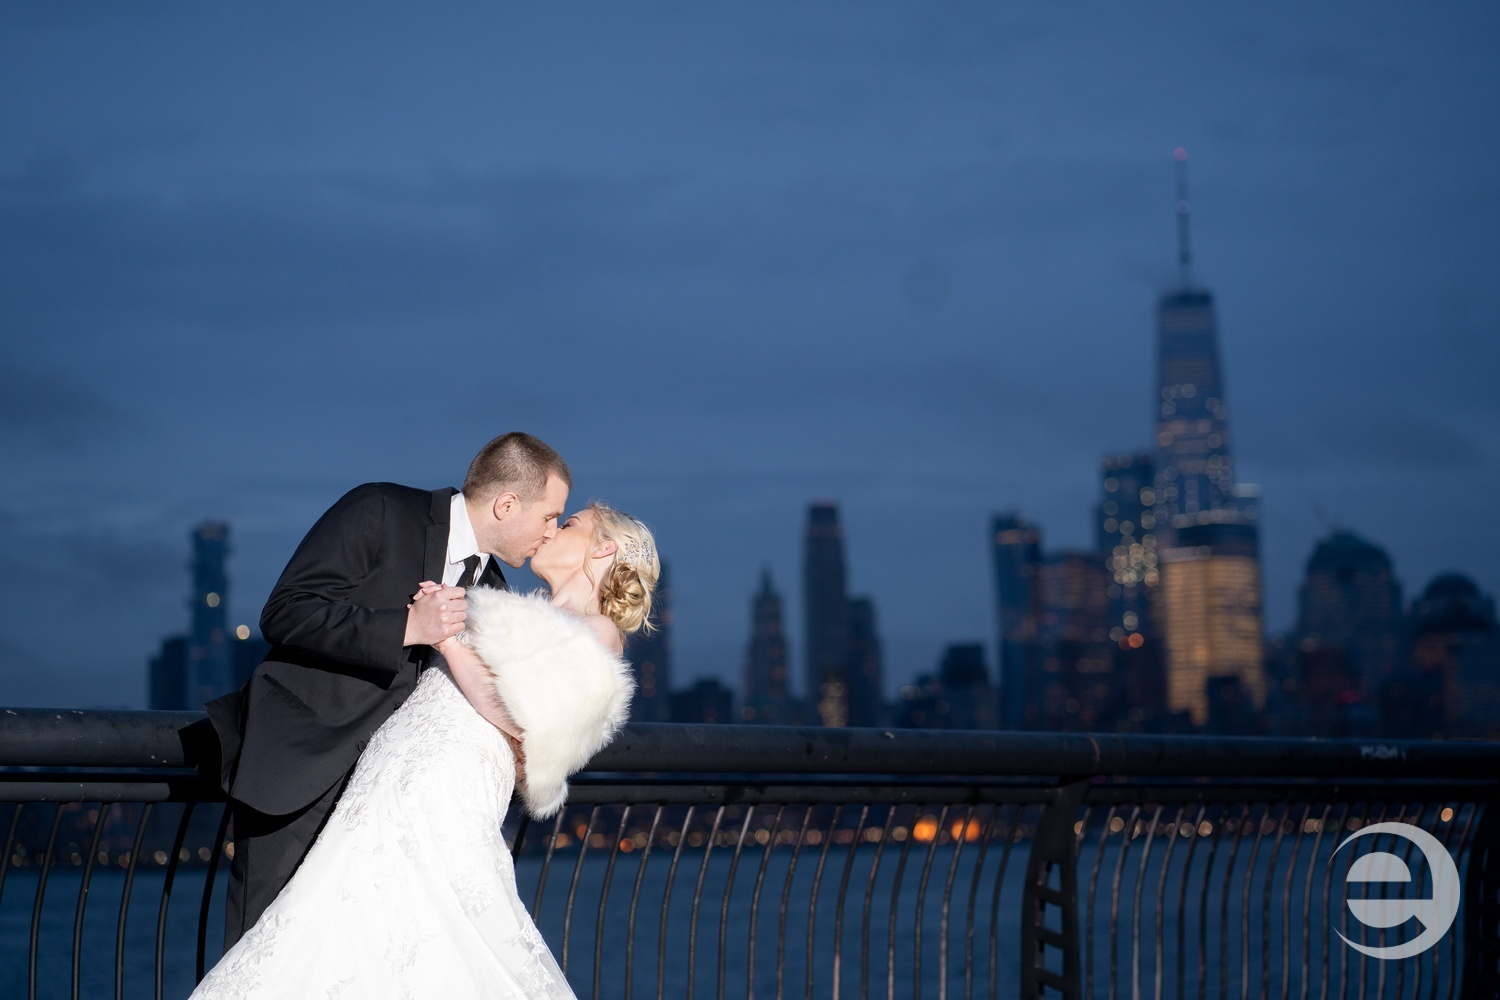 Married couple poses by waterfront for wedding photo